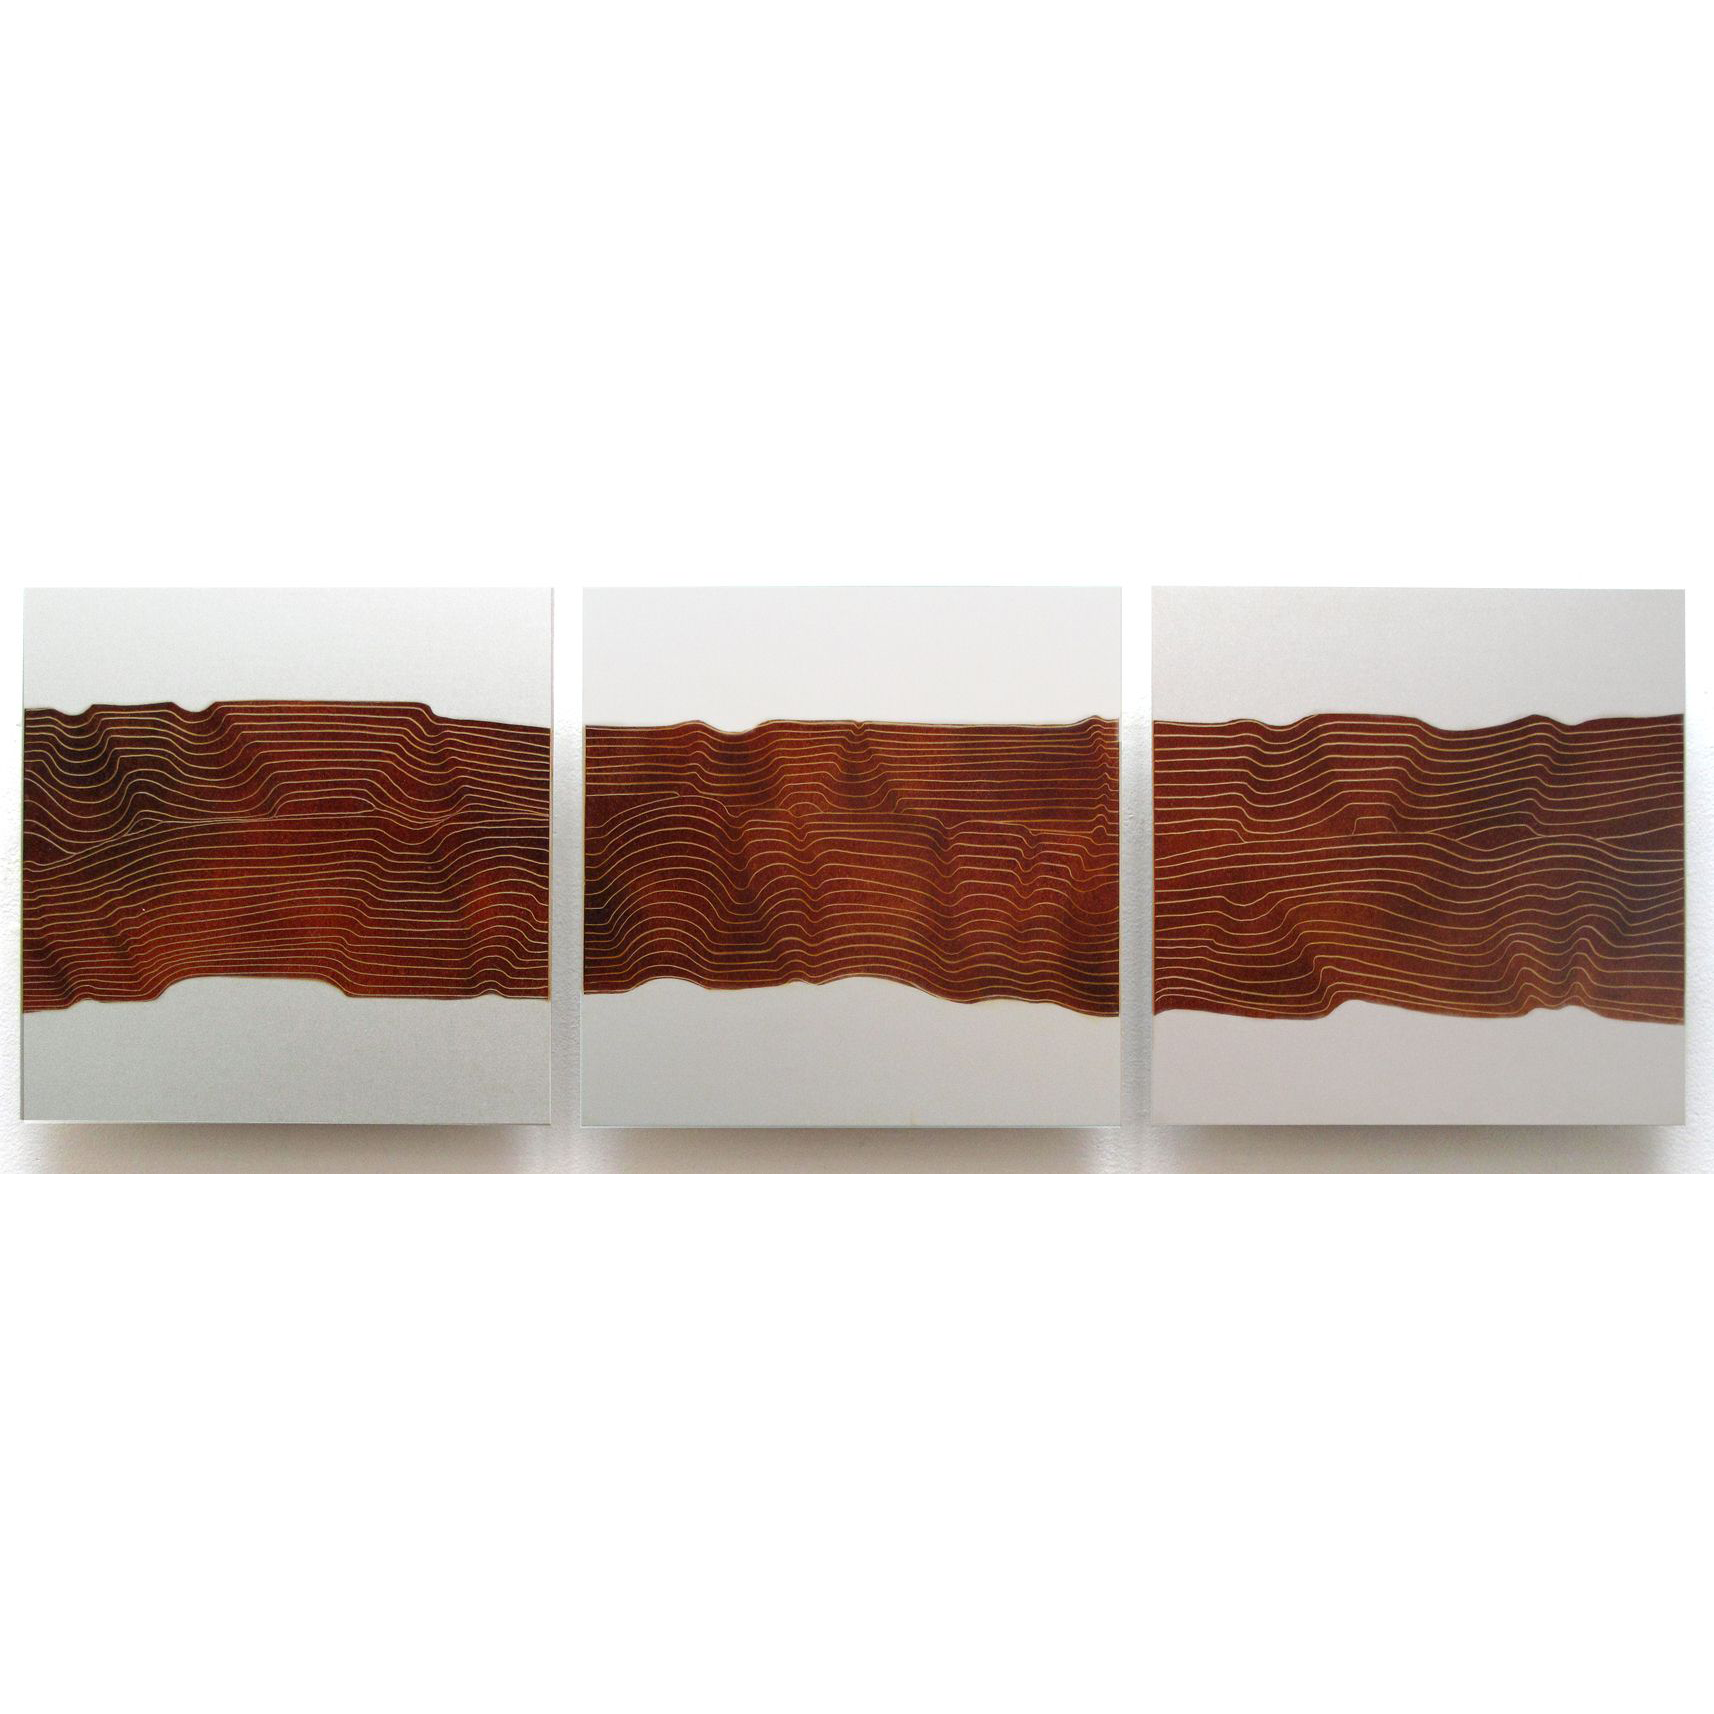 "Ribbon Canyon, 2012, Oil on aluminum panel, 12 x 36""Private Collection"